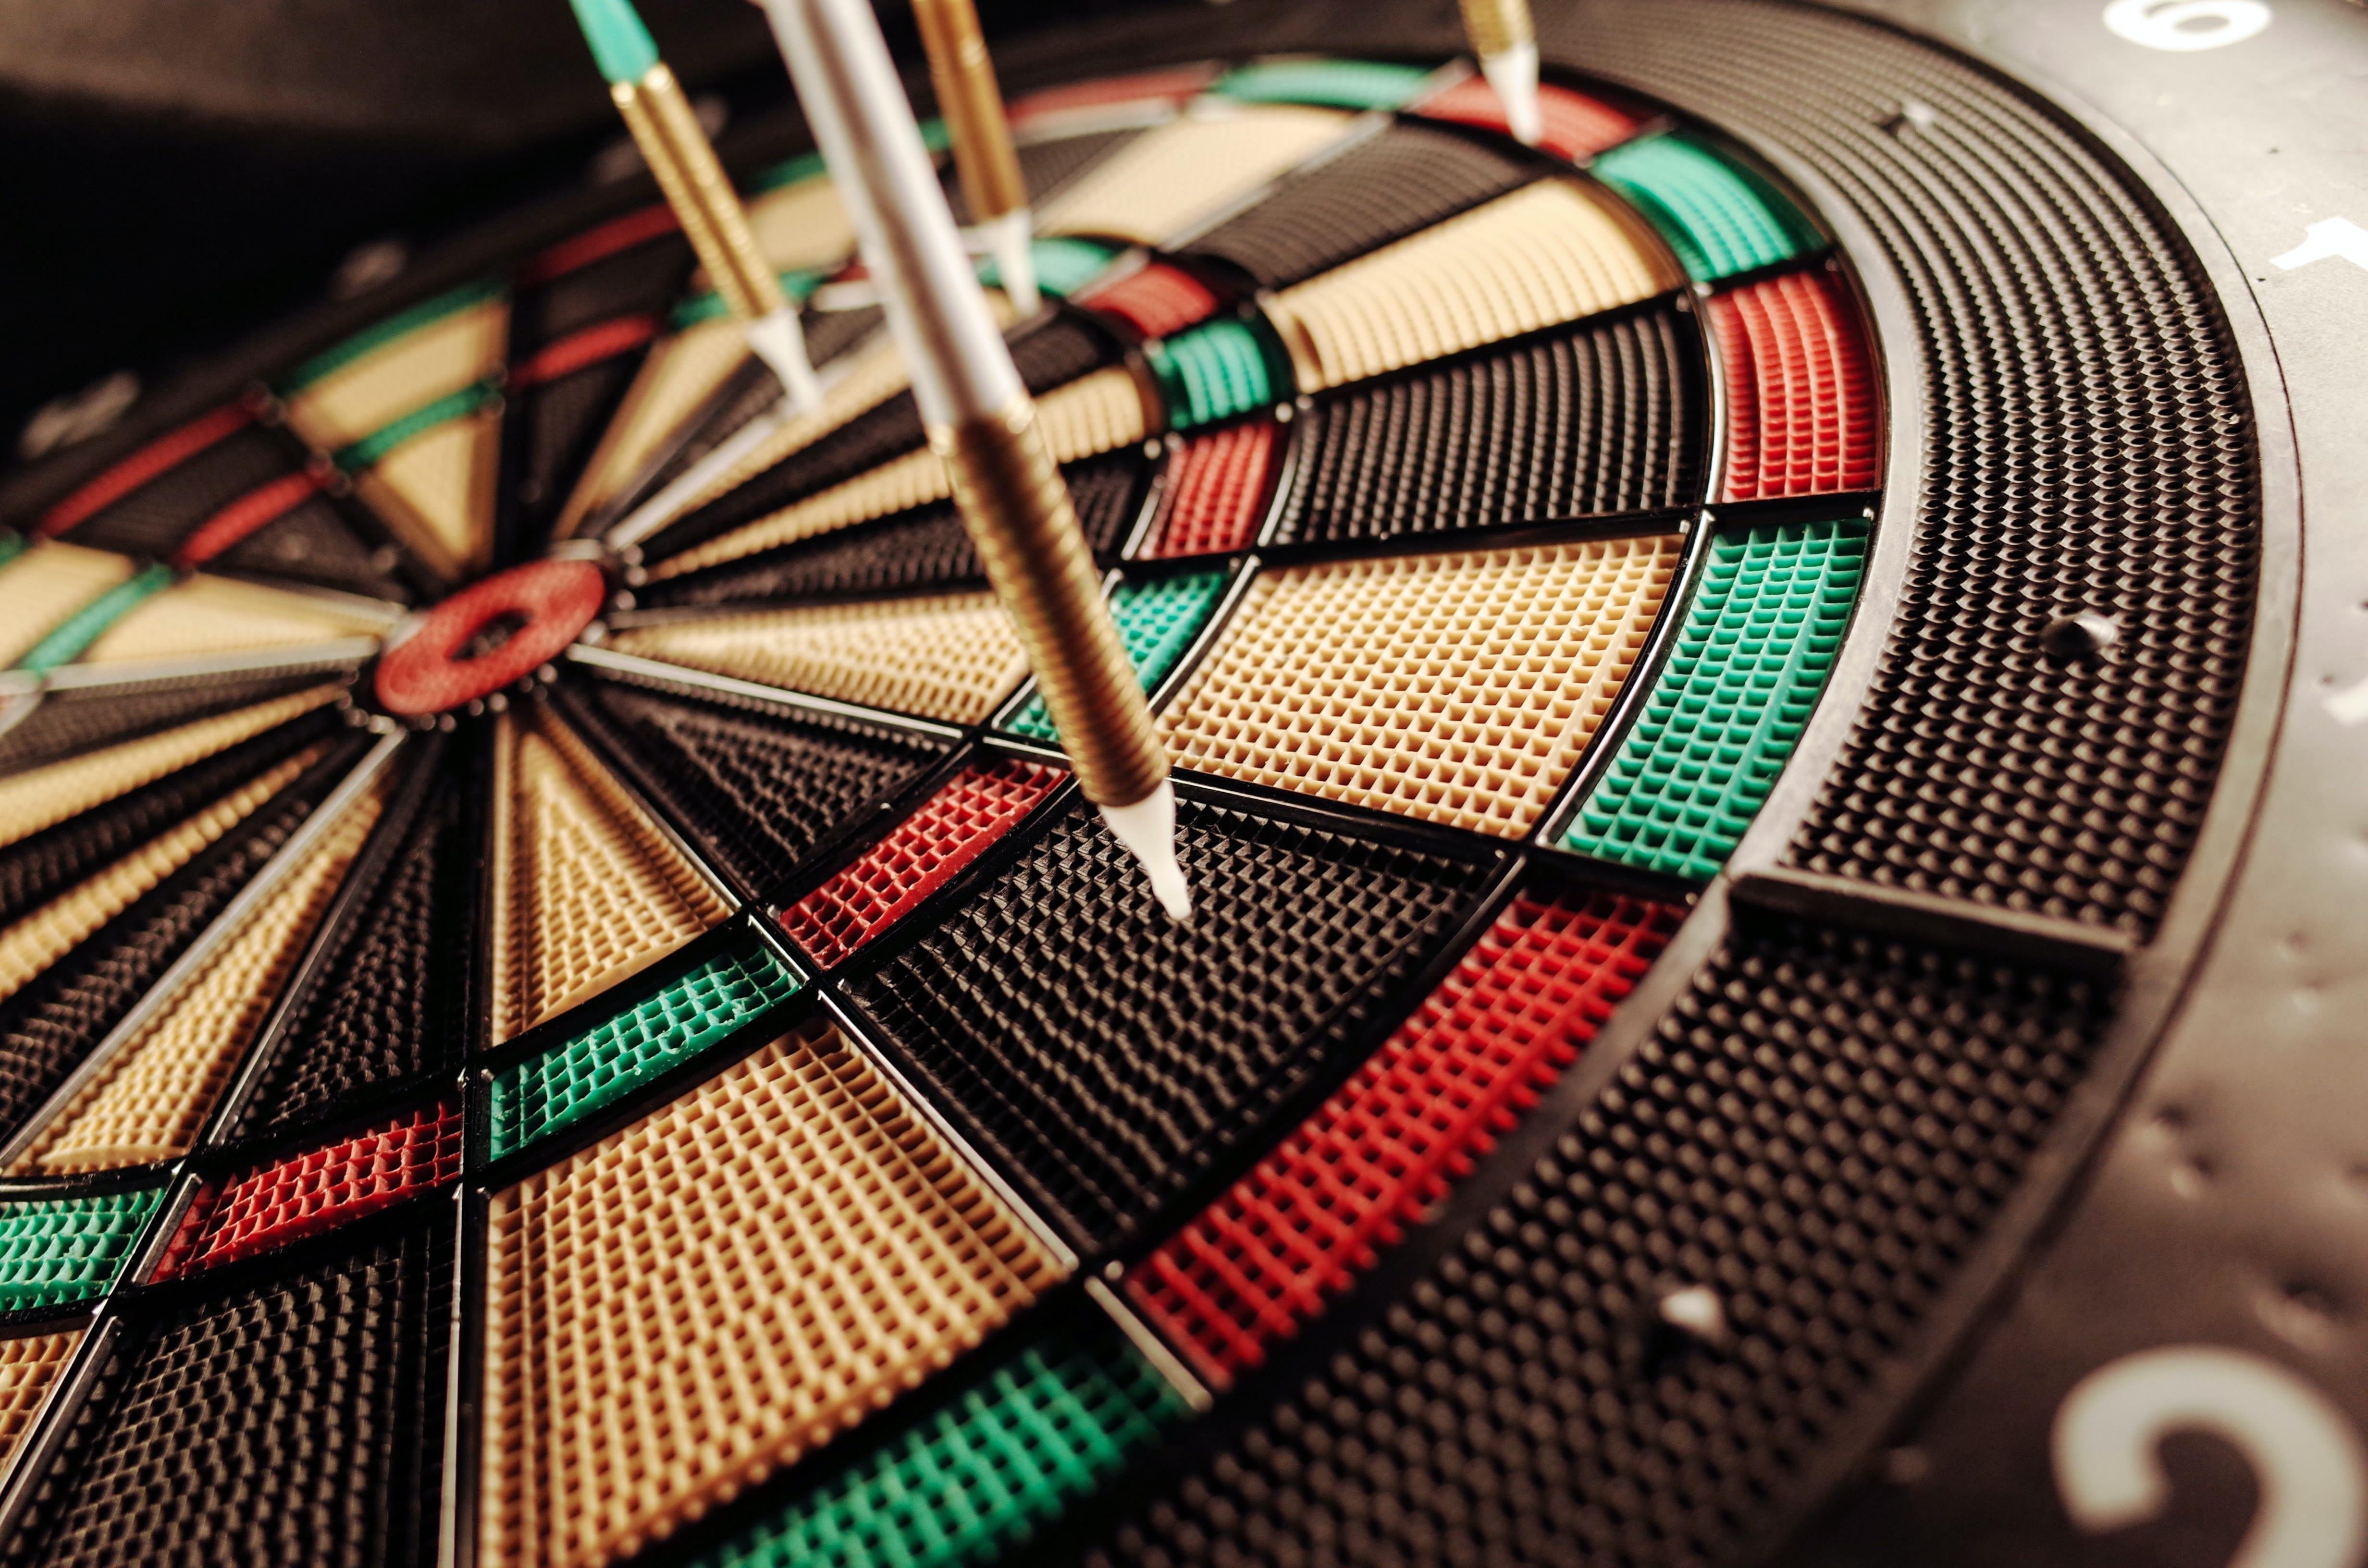 set-weekly-targets-abstract-dartboard